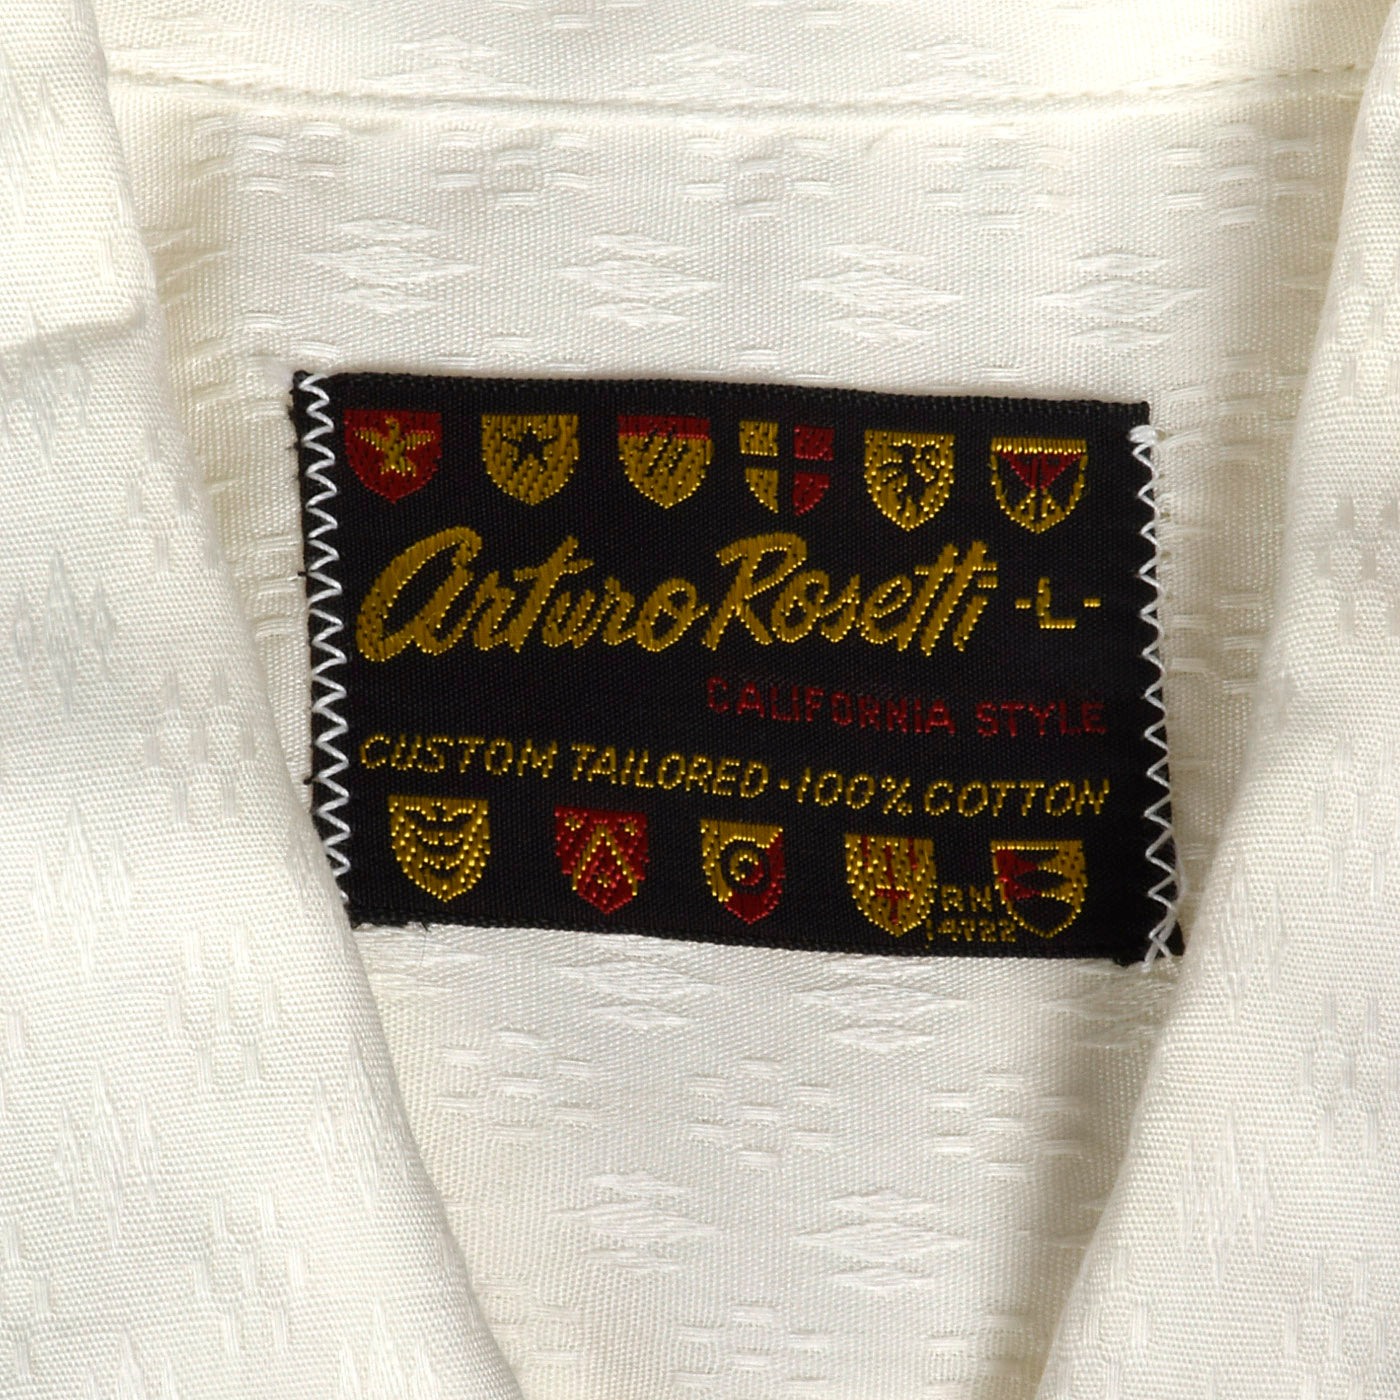 1950s Deadstock White Cotton Shirt with Loop Collar